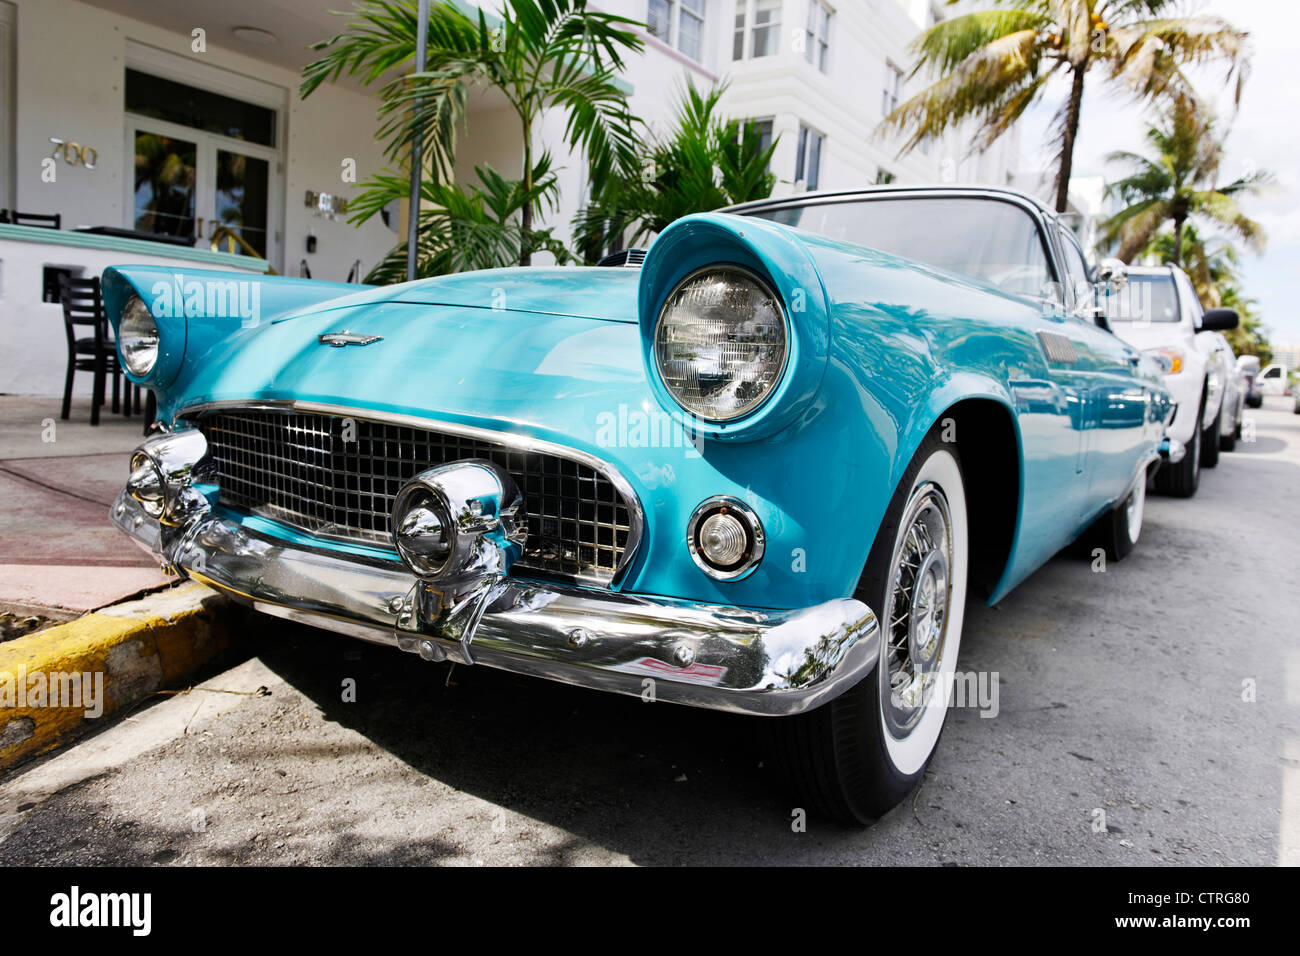 Ford thunderbird built in 1957 fifties american classic for American classic usa